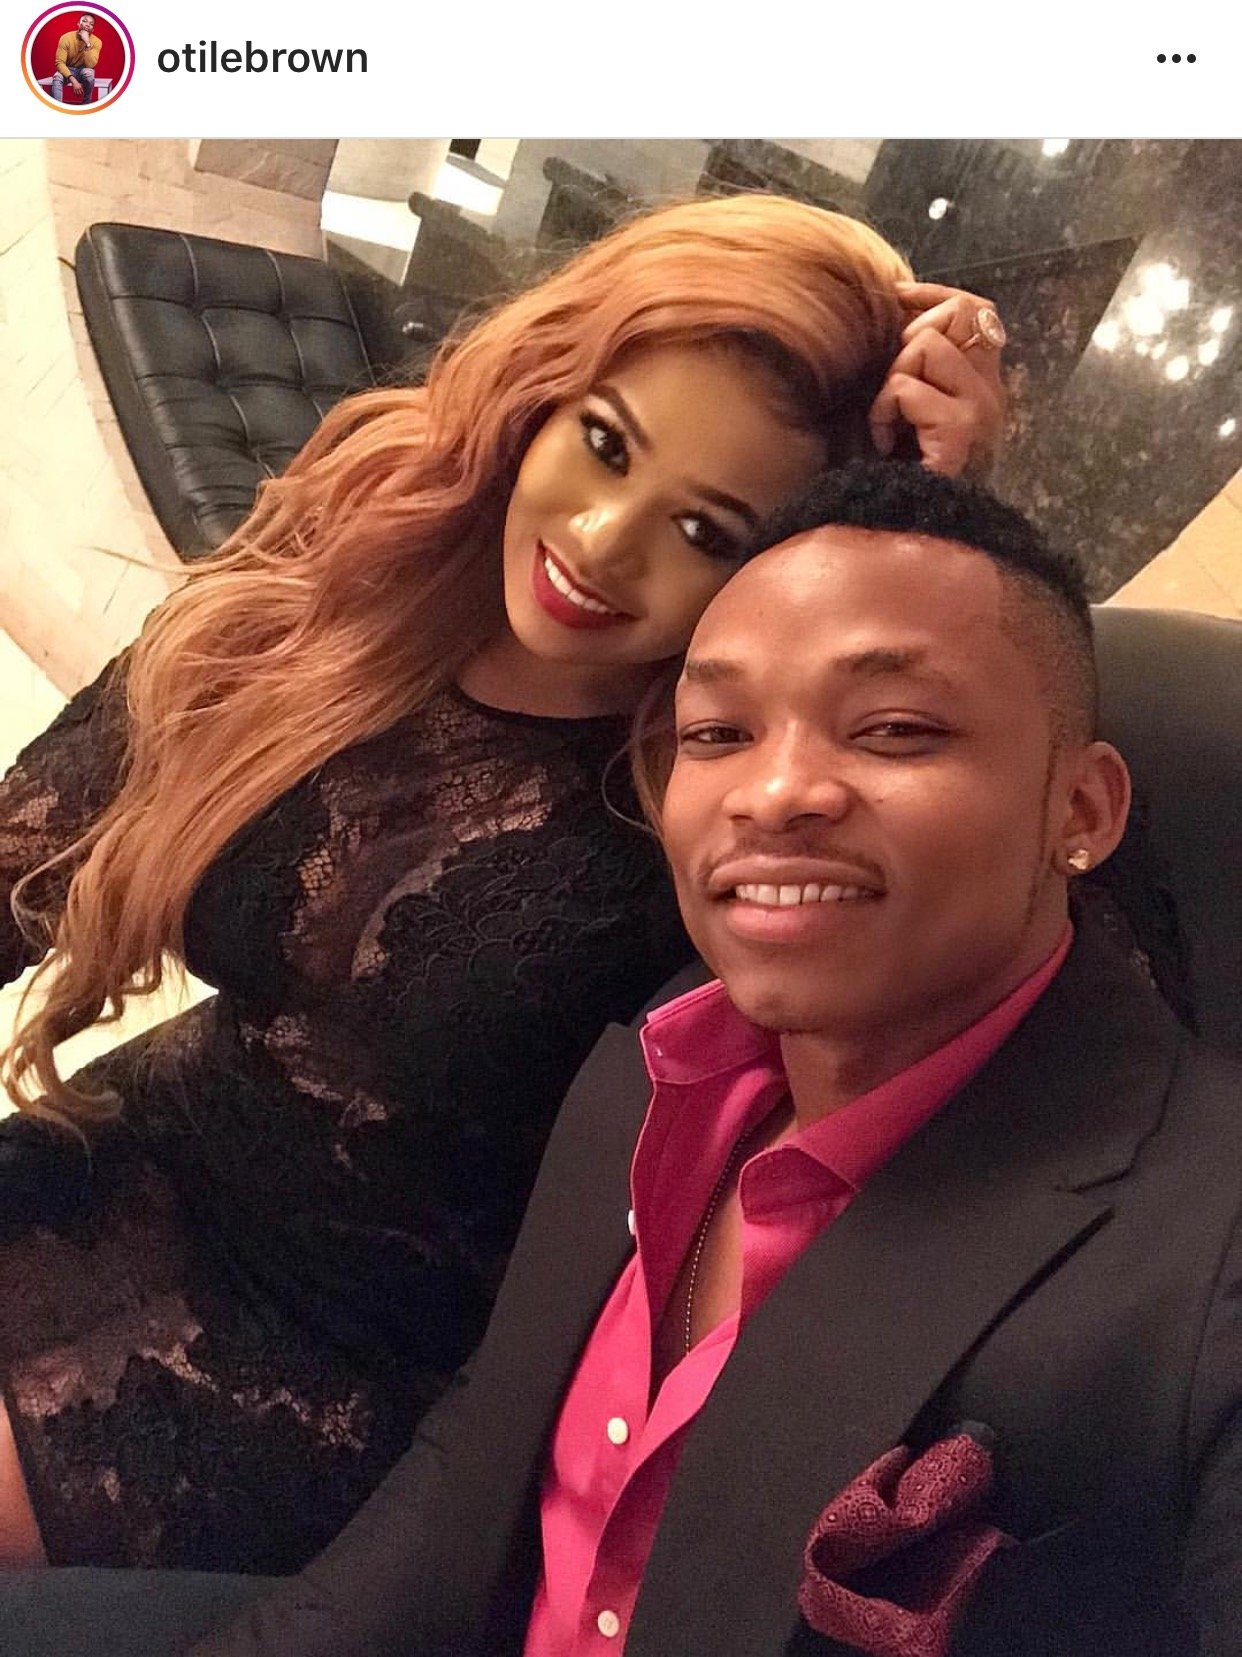 """Madem wote warembo uliona tu Vera Sidika?"" Otile Brown trolled by fellow artist on social media"